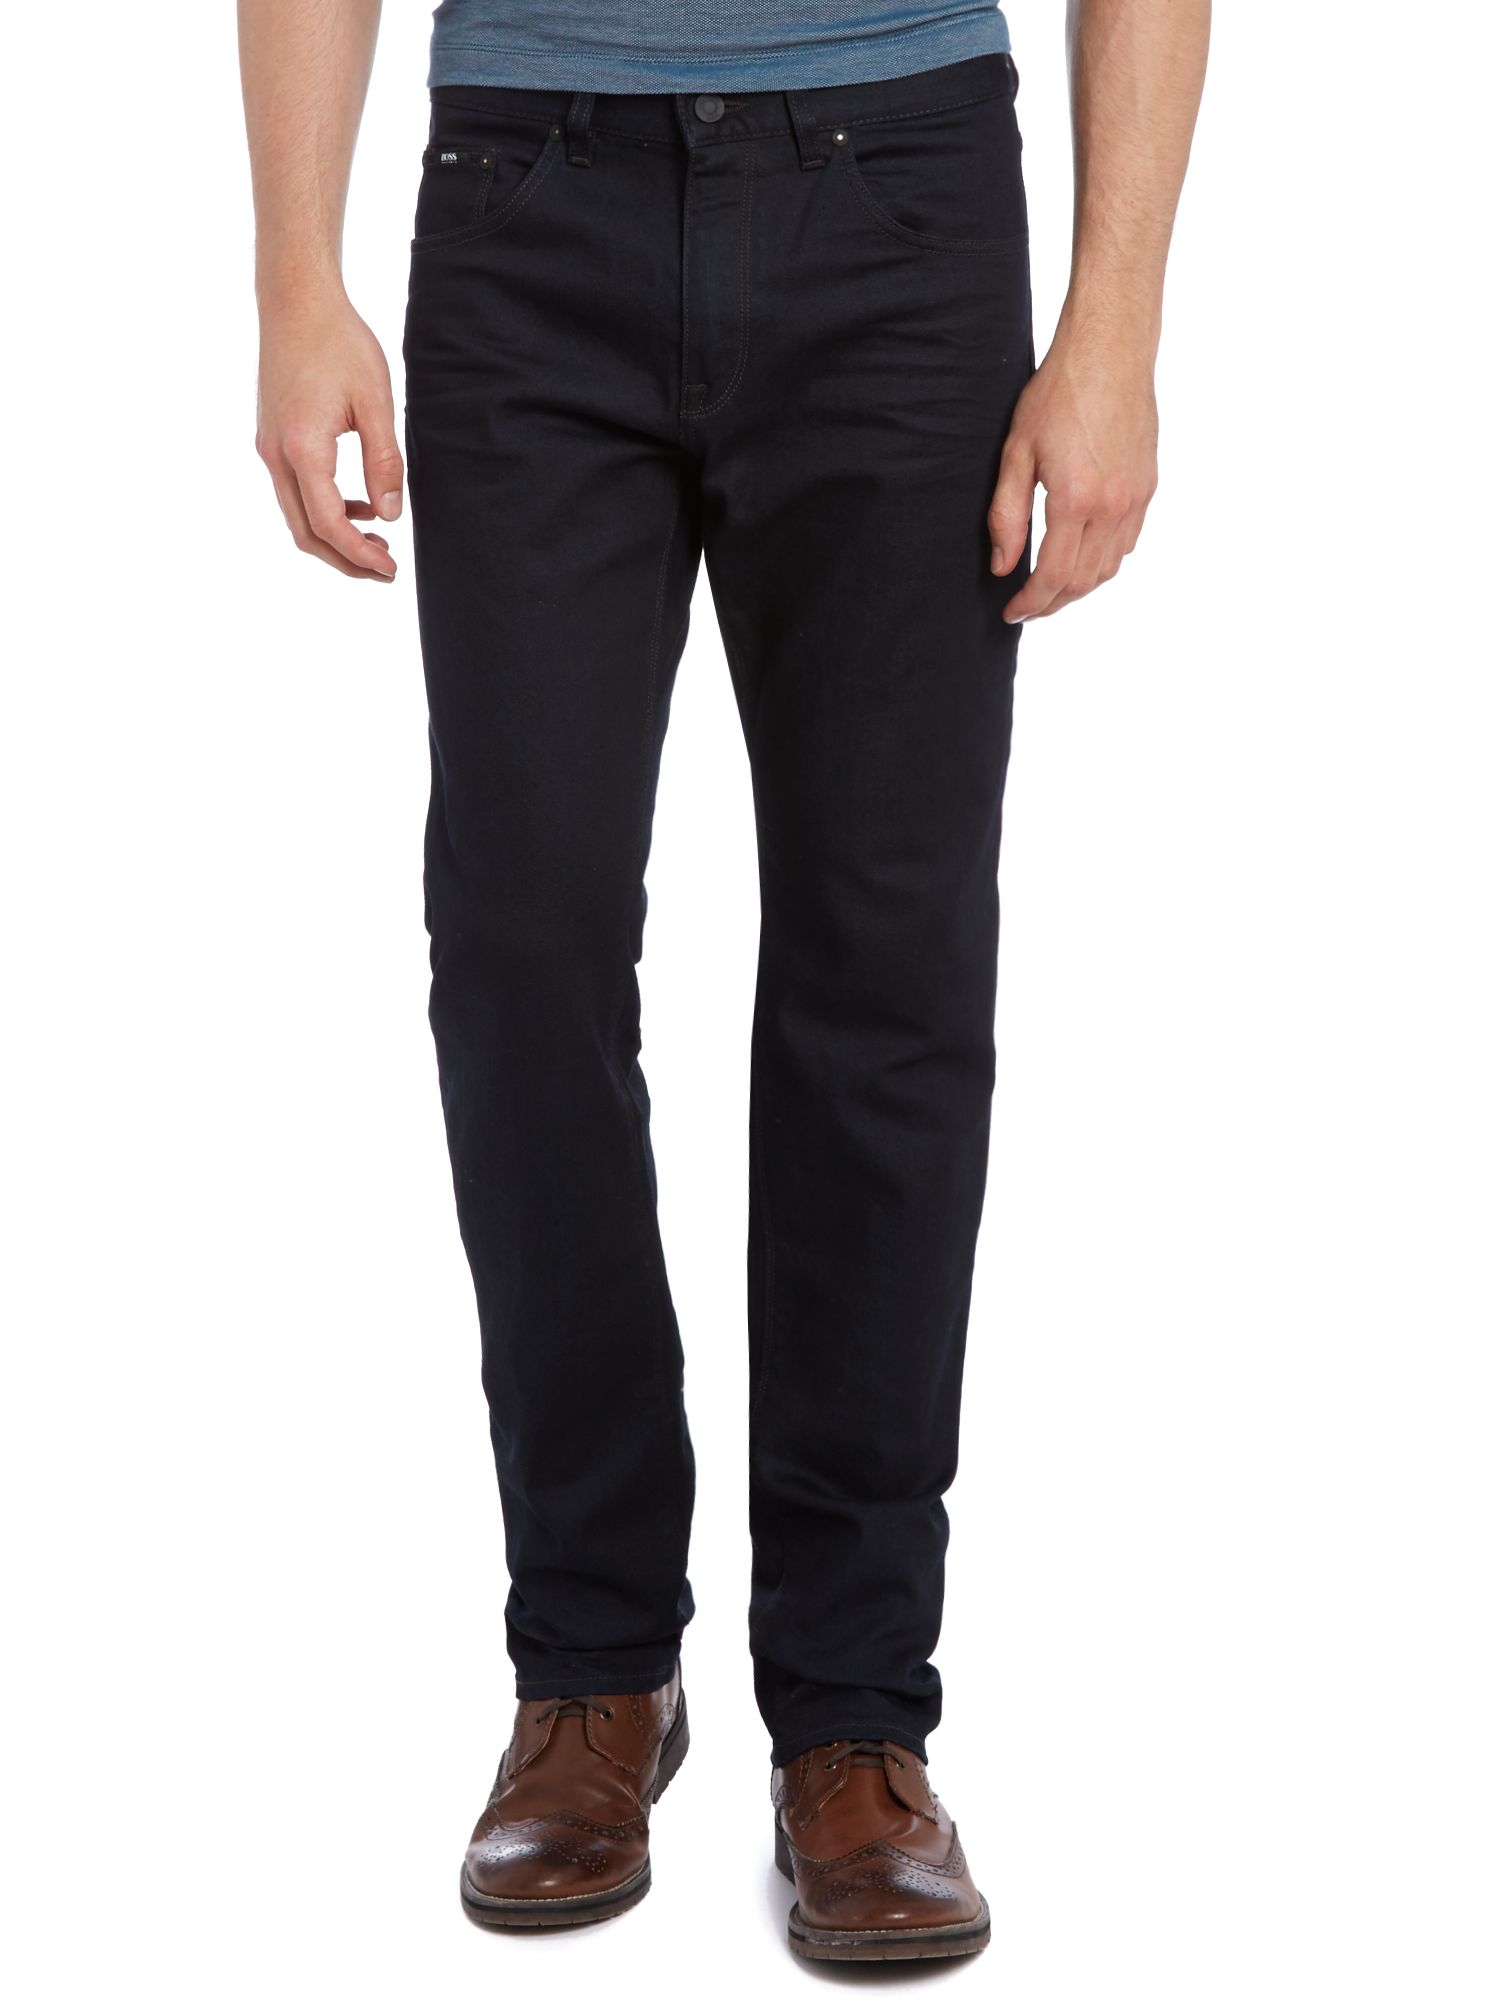 Maine regular straight black wash jean